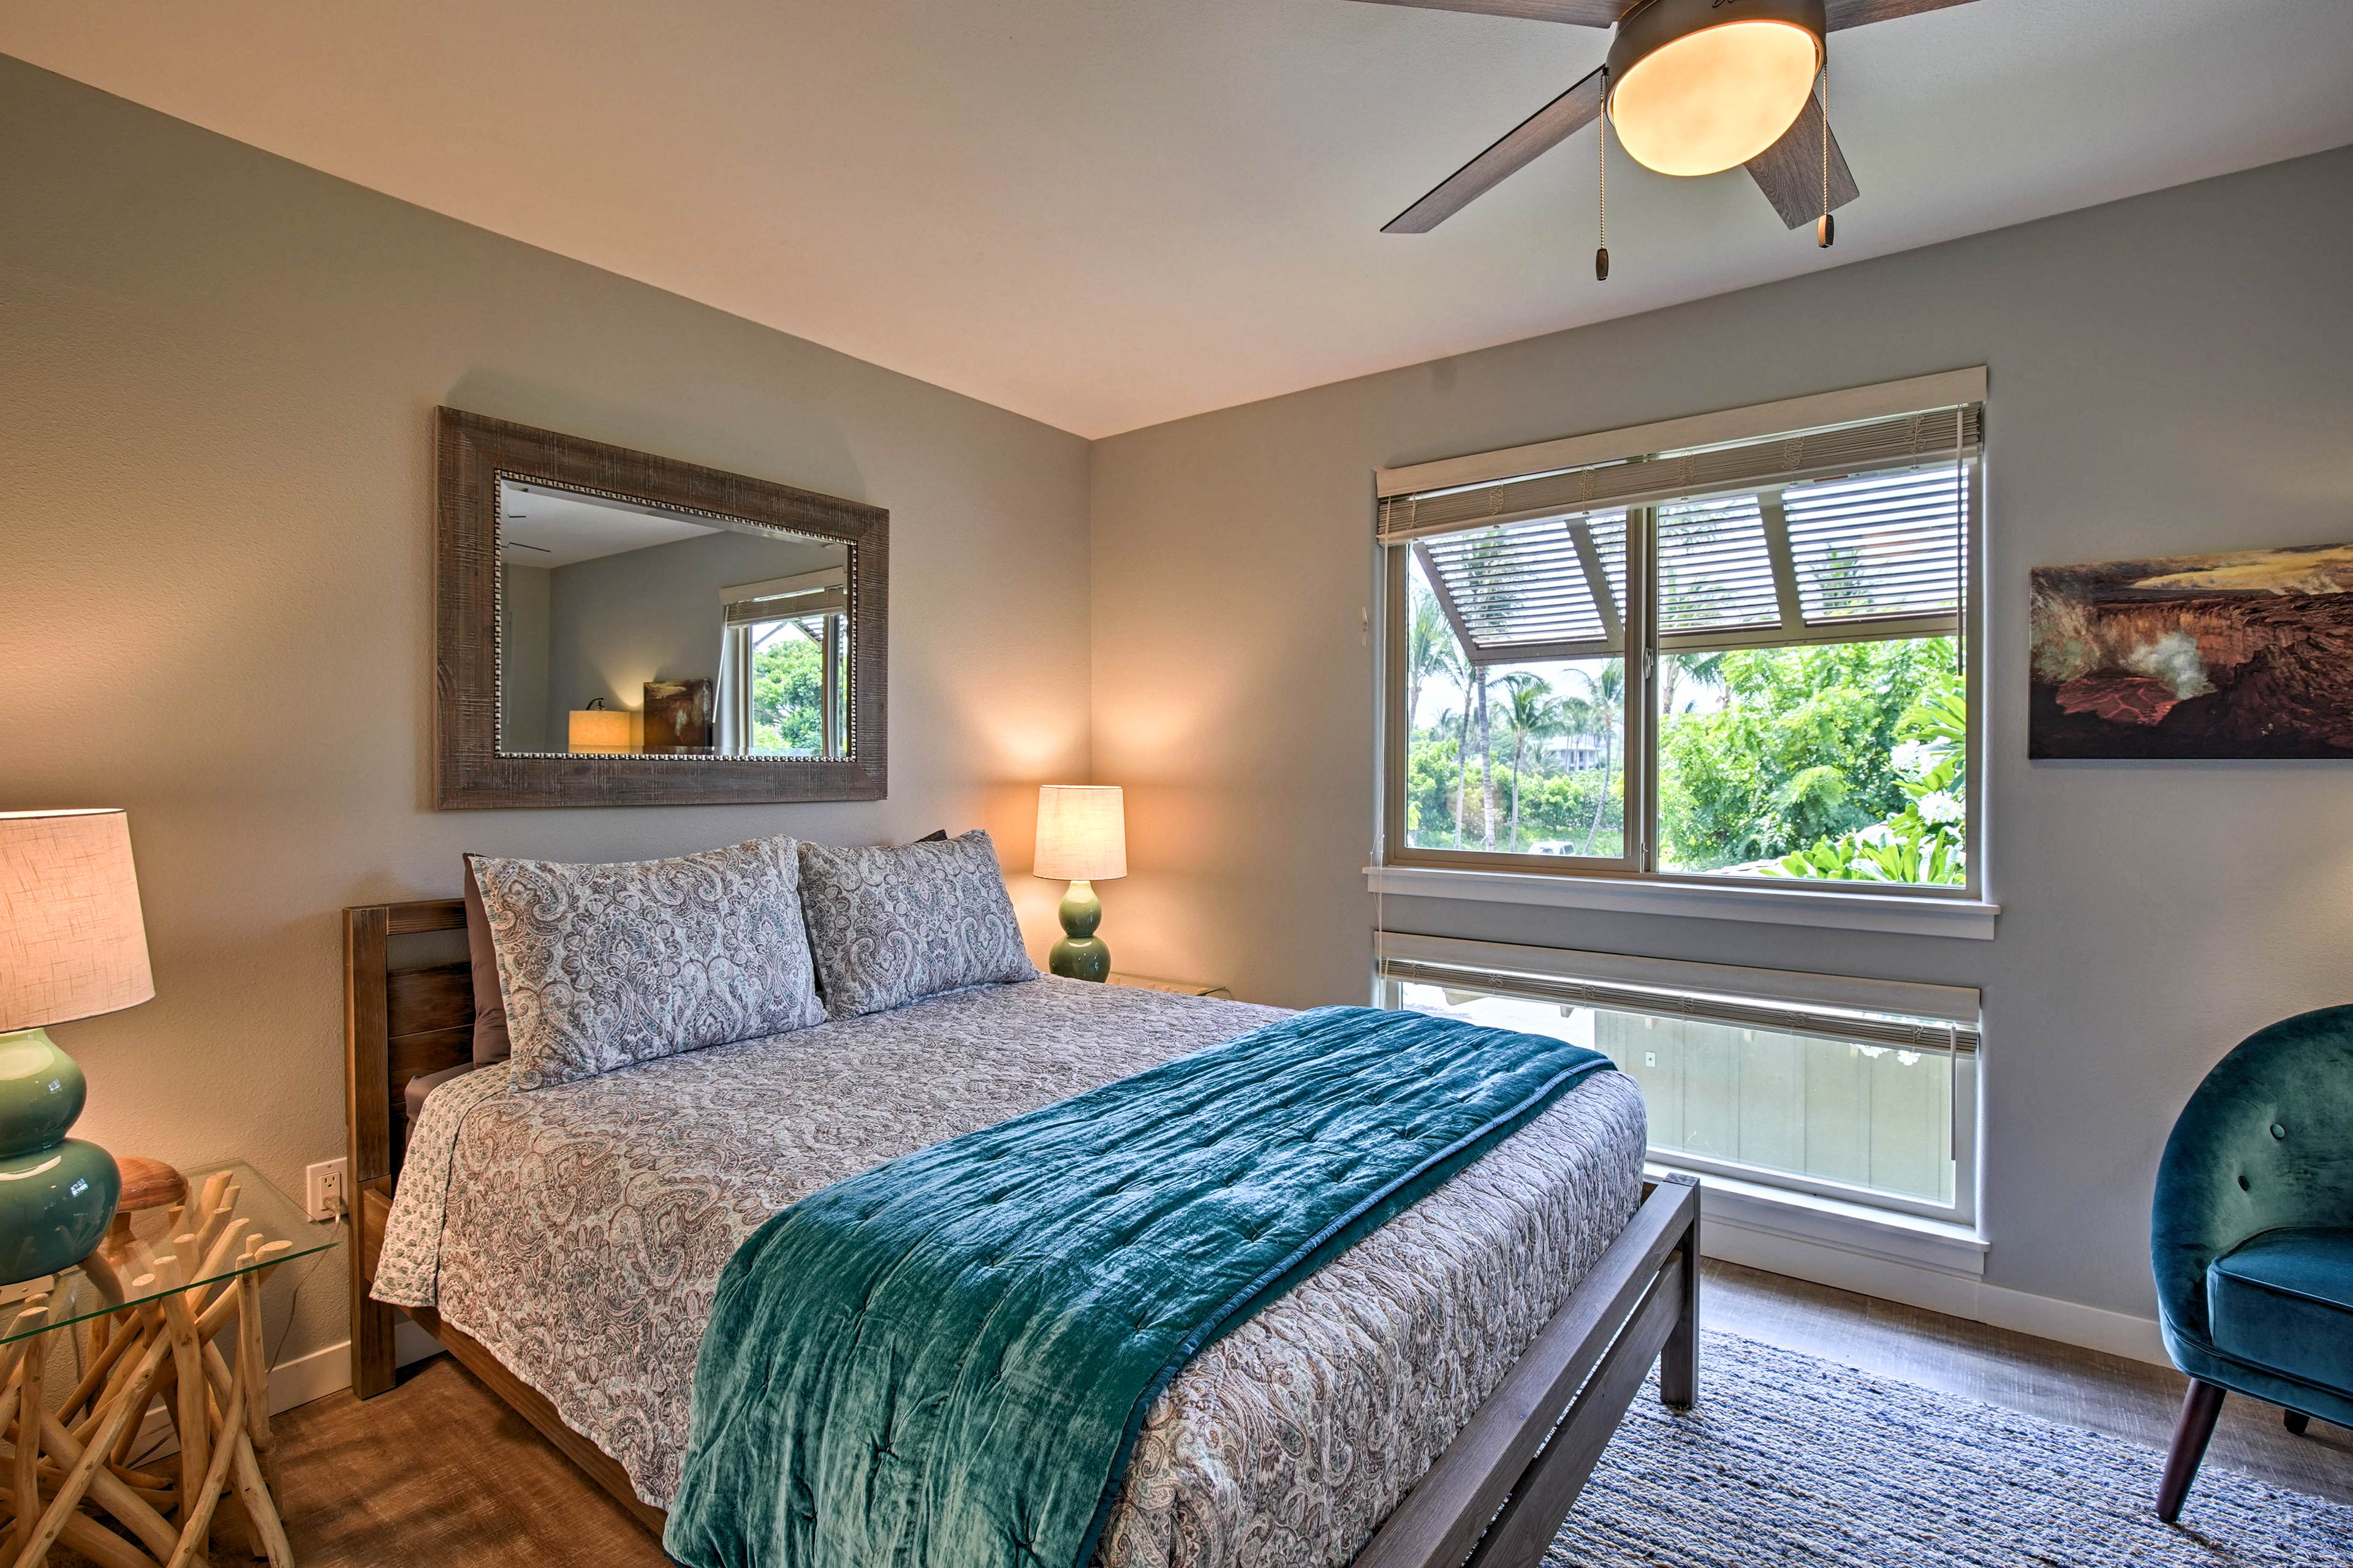 A quiet night's sleep awaits in the second bedroom featuring a queen bed.